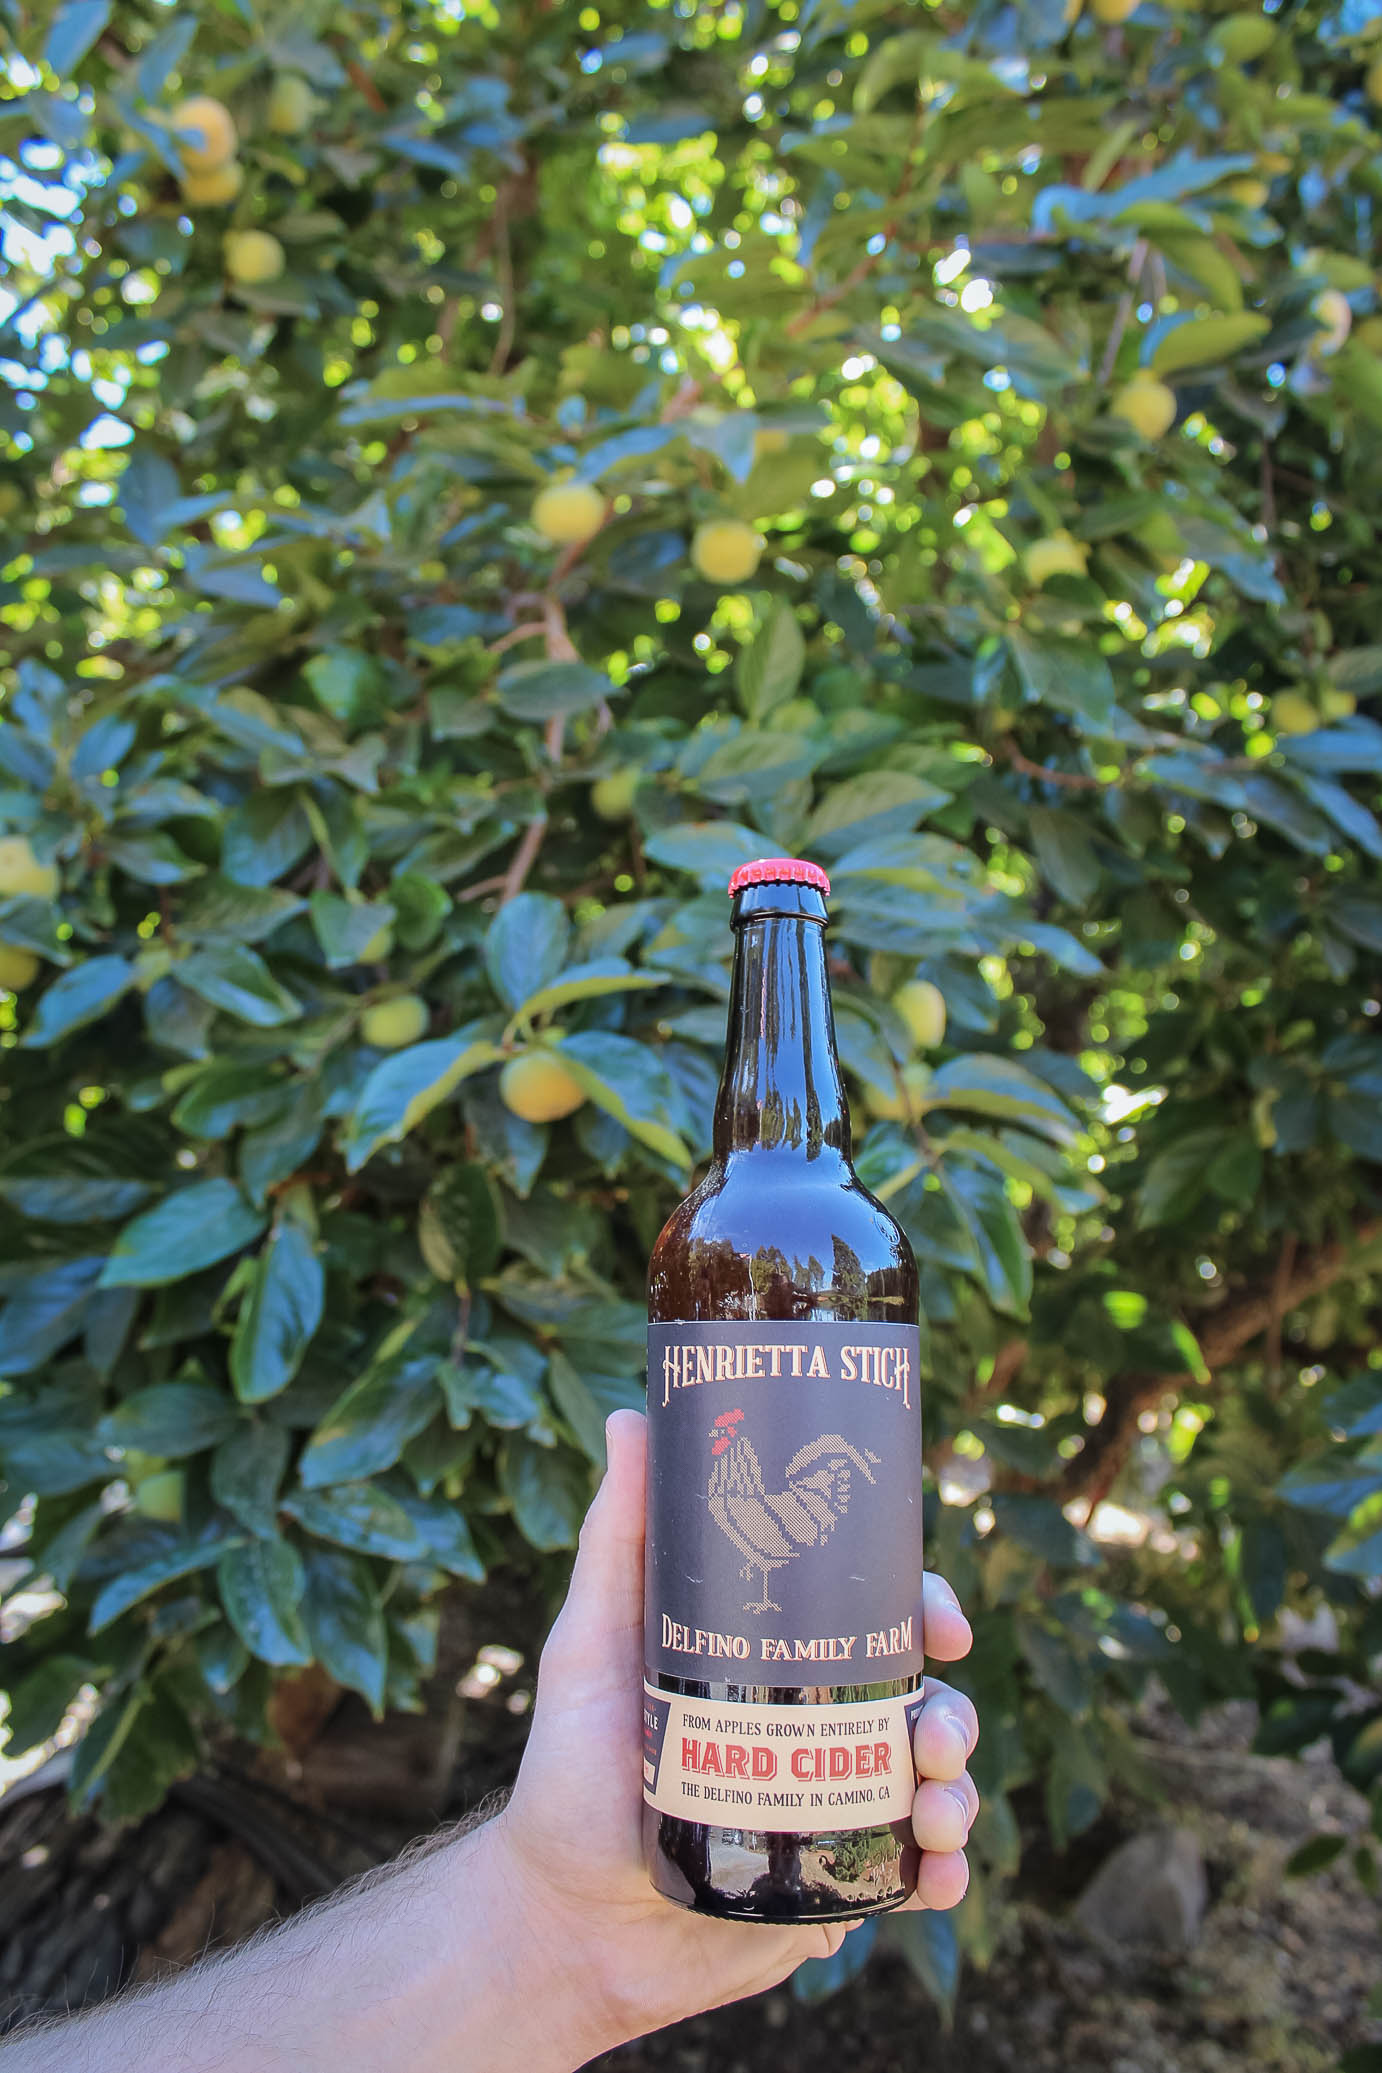 Bottle of the second batch of Henrietta Stitch hard apple cider at Kids Inc/Delfino Family Farm in Apple Hill, CA